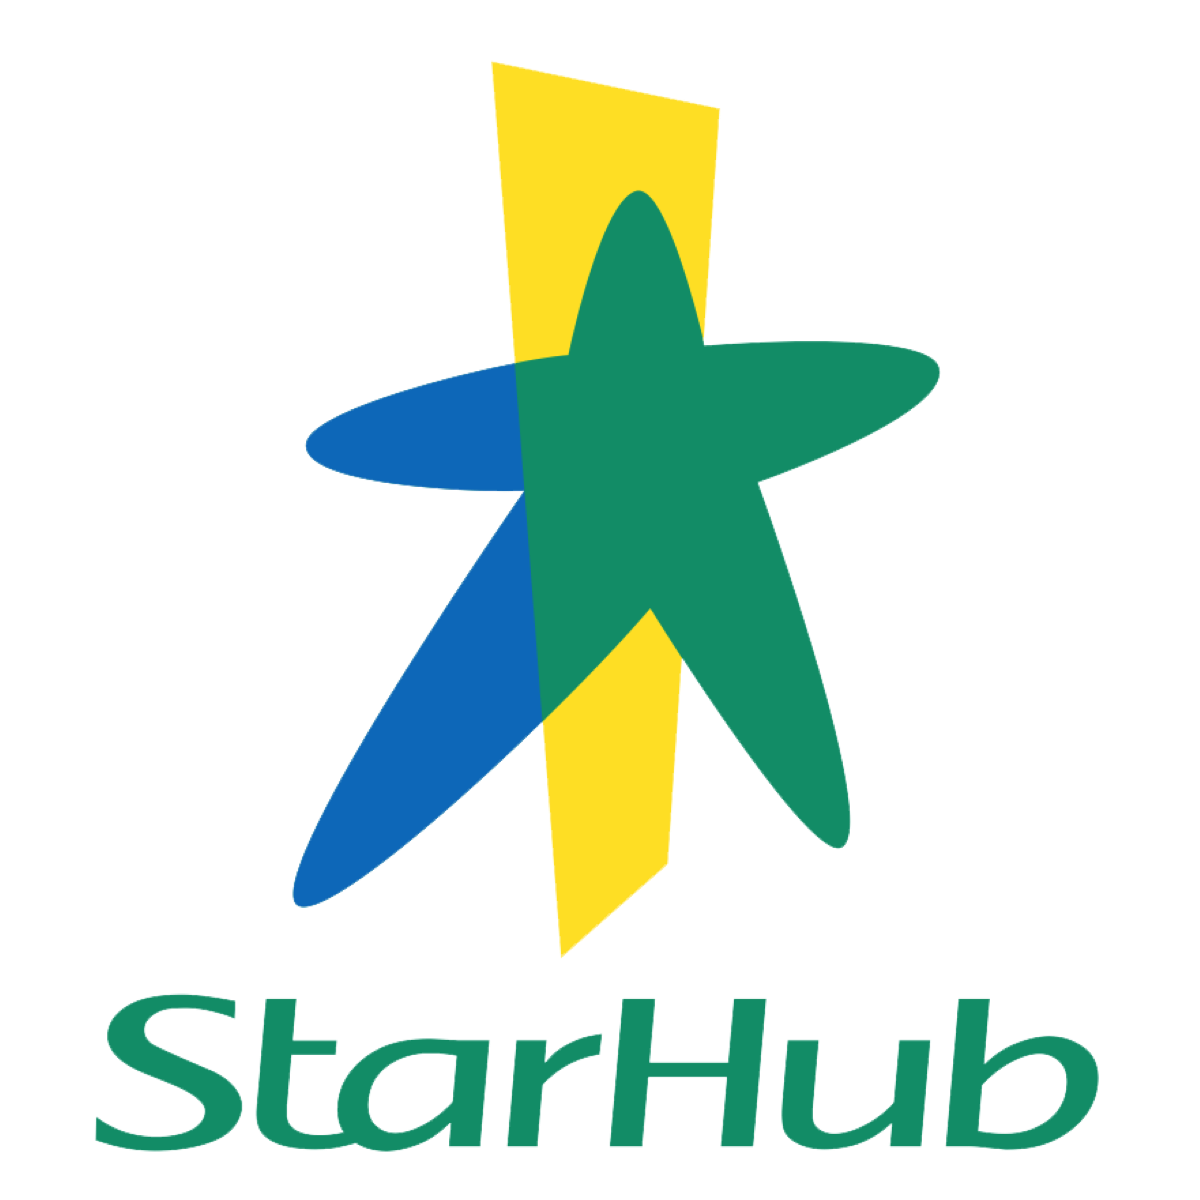 StarHub (STH SP) - UOB Kay Hian 2017-02-06: 4Q16 Growth From Broadband As Well As Data And Internet